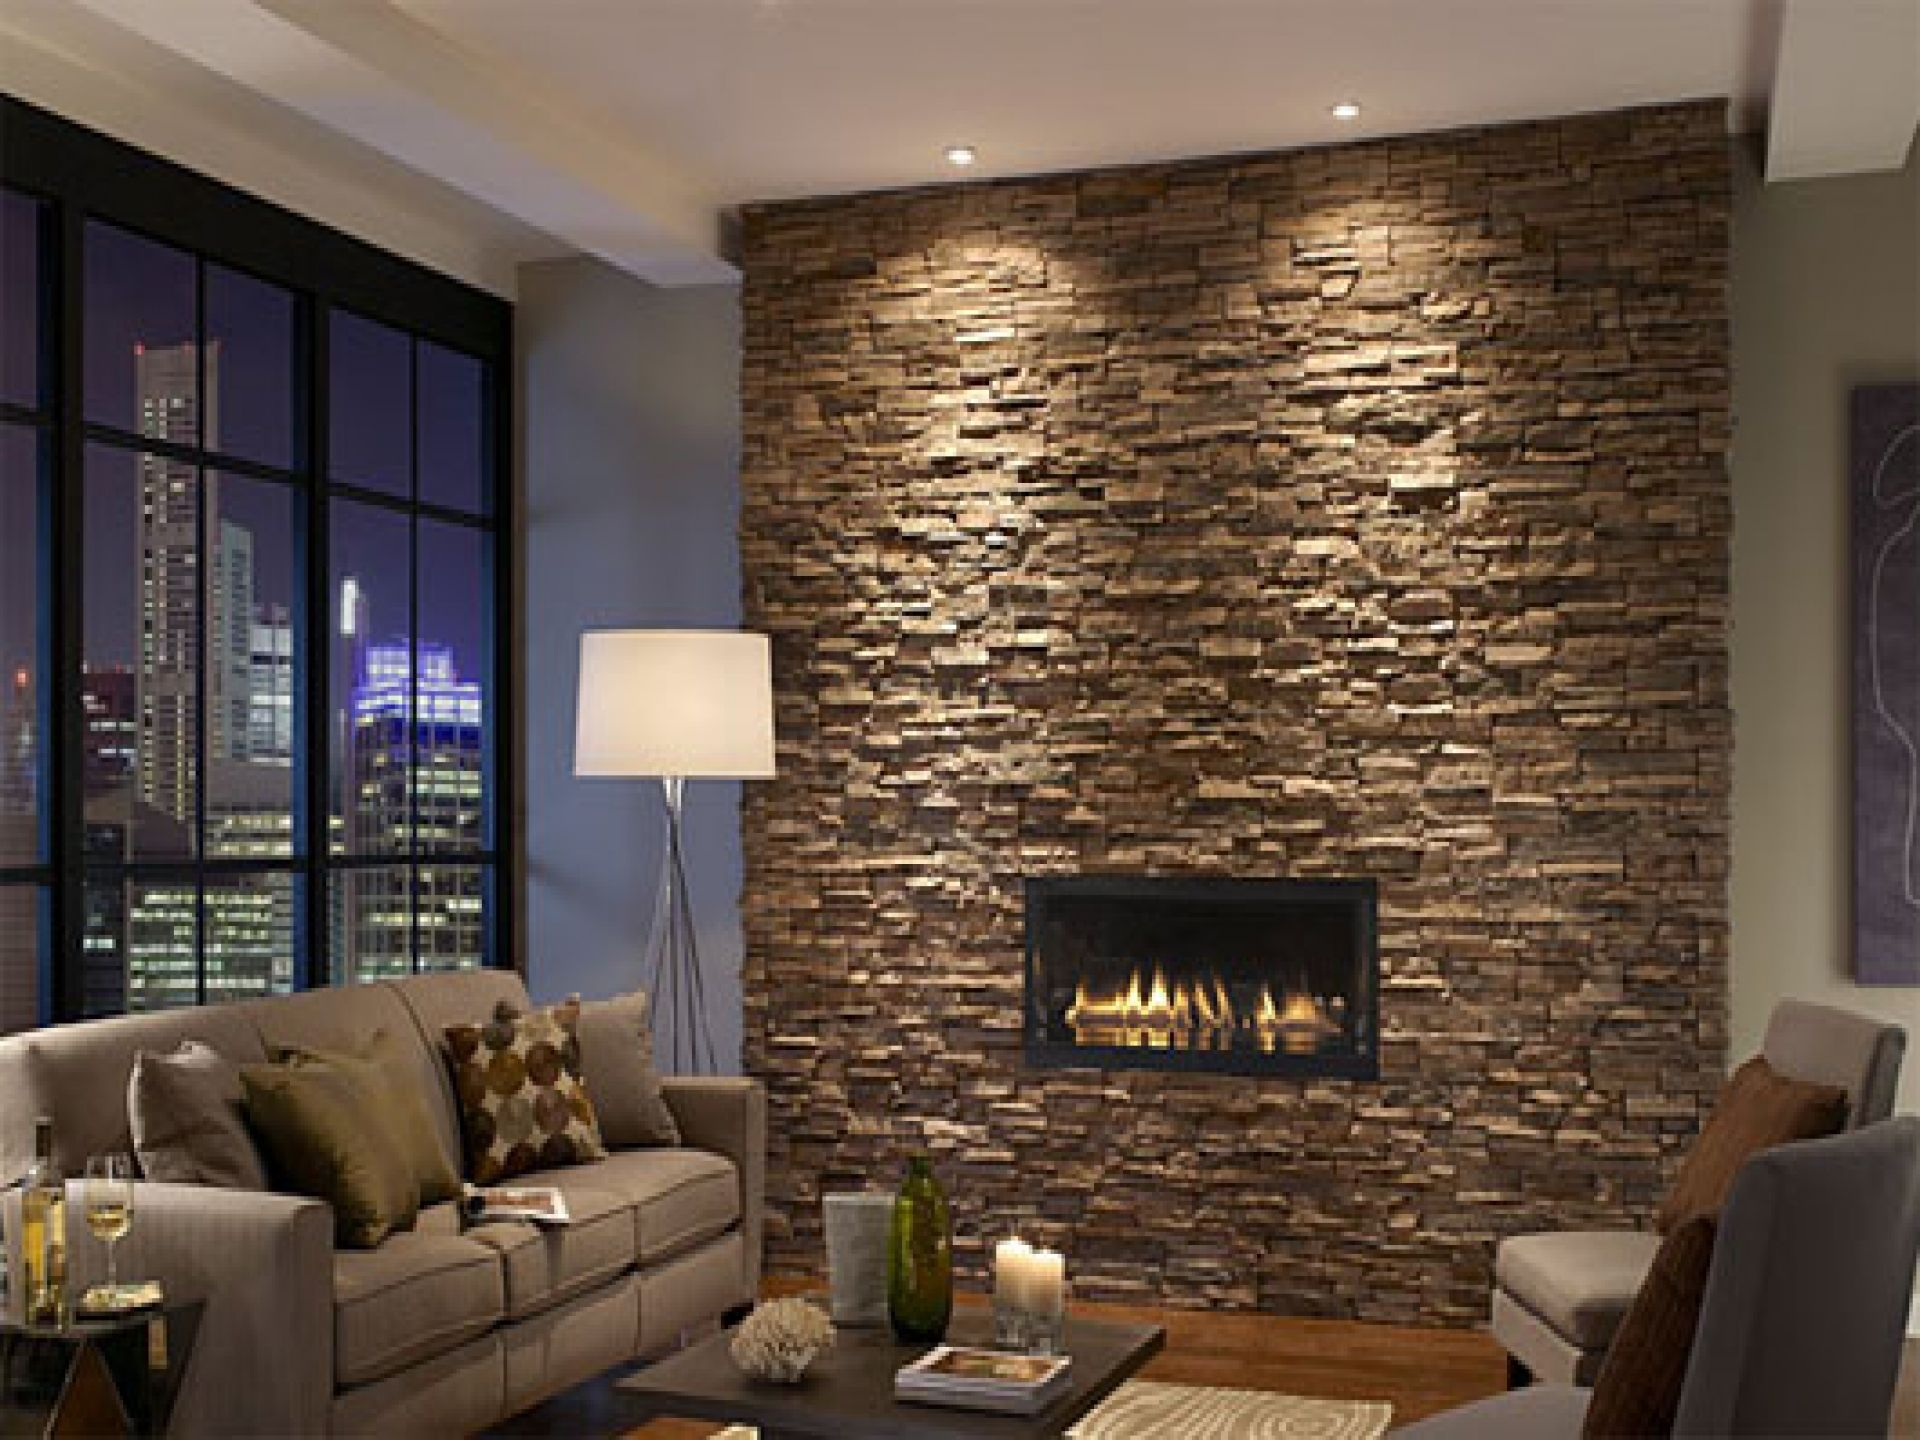 Interior Stone Wall Design Interior Design